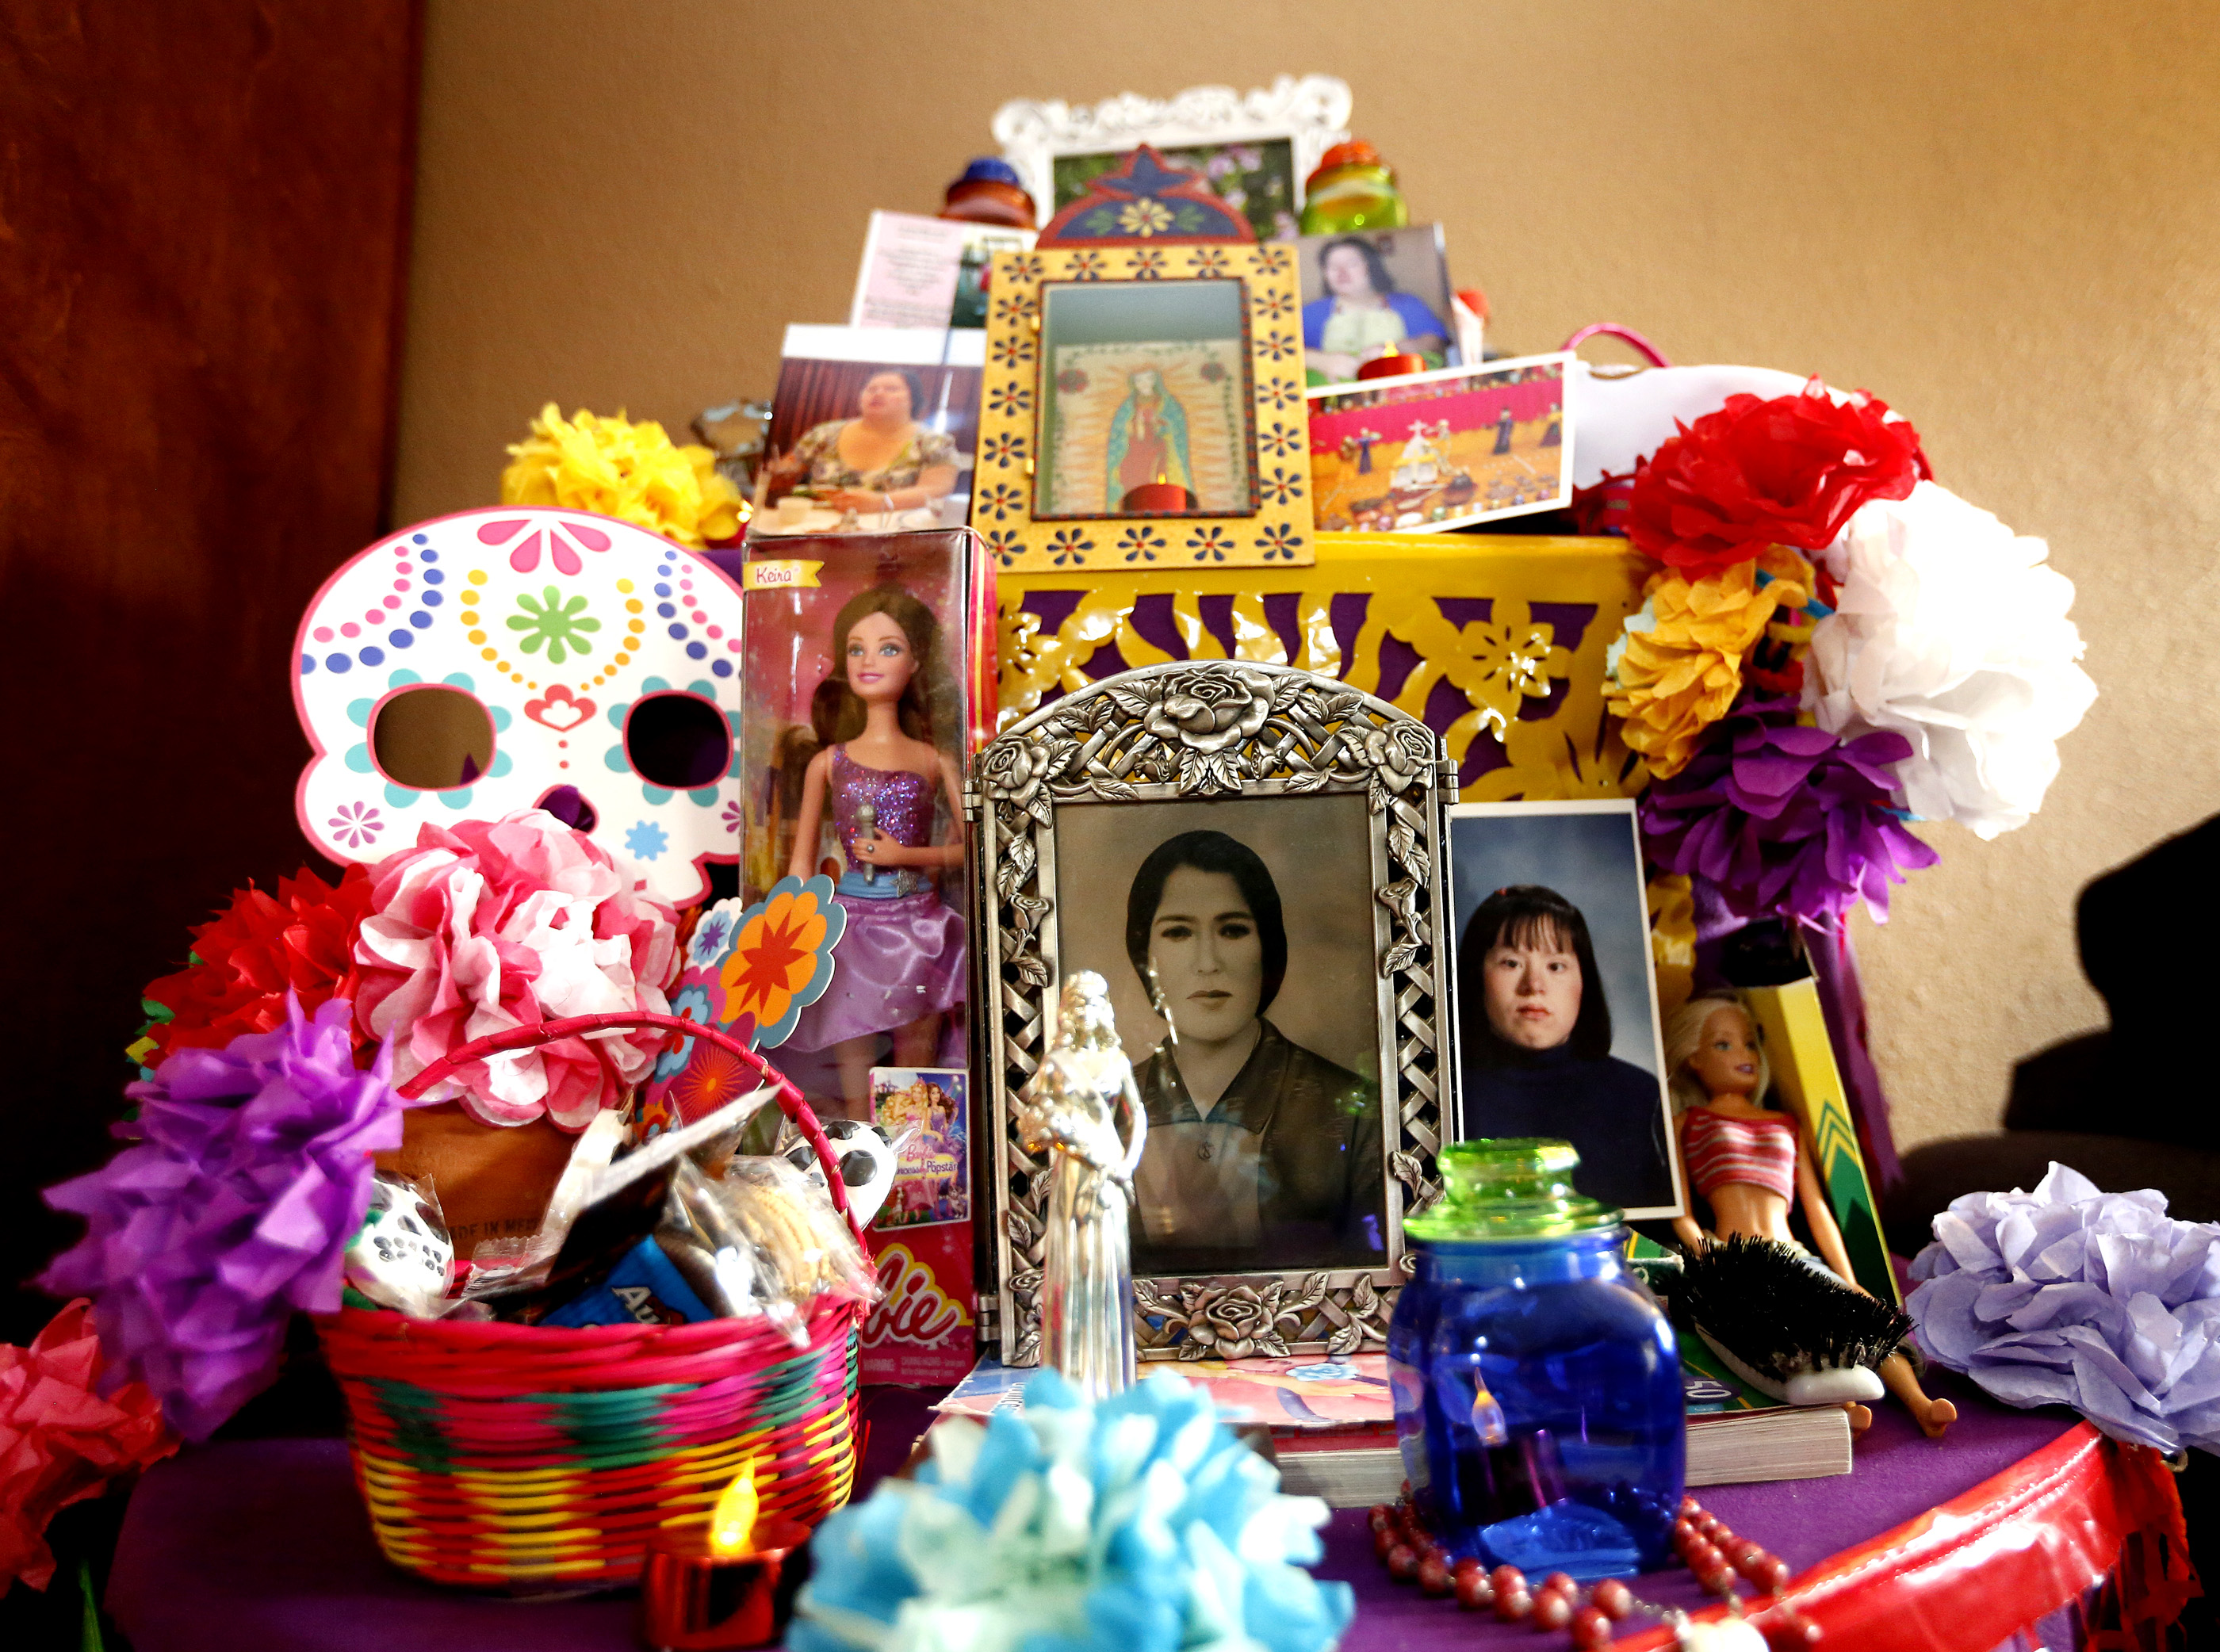 10/27/16/ LOS ANGELES/Beatriz Hernandez with her mother Maria Sacramento Luna and young daughter Priscilla Lynn, 17, create a Day of the Dead altar for her sister Angelica Hernandez, who died early this year. (Photo Aurelia Ventura/ La Opinion)